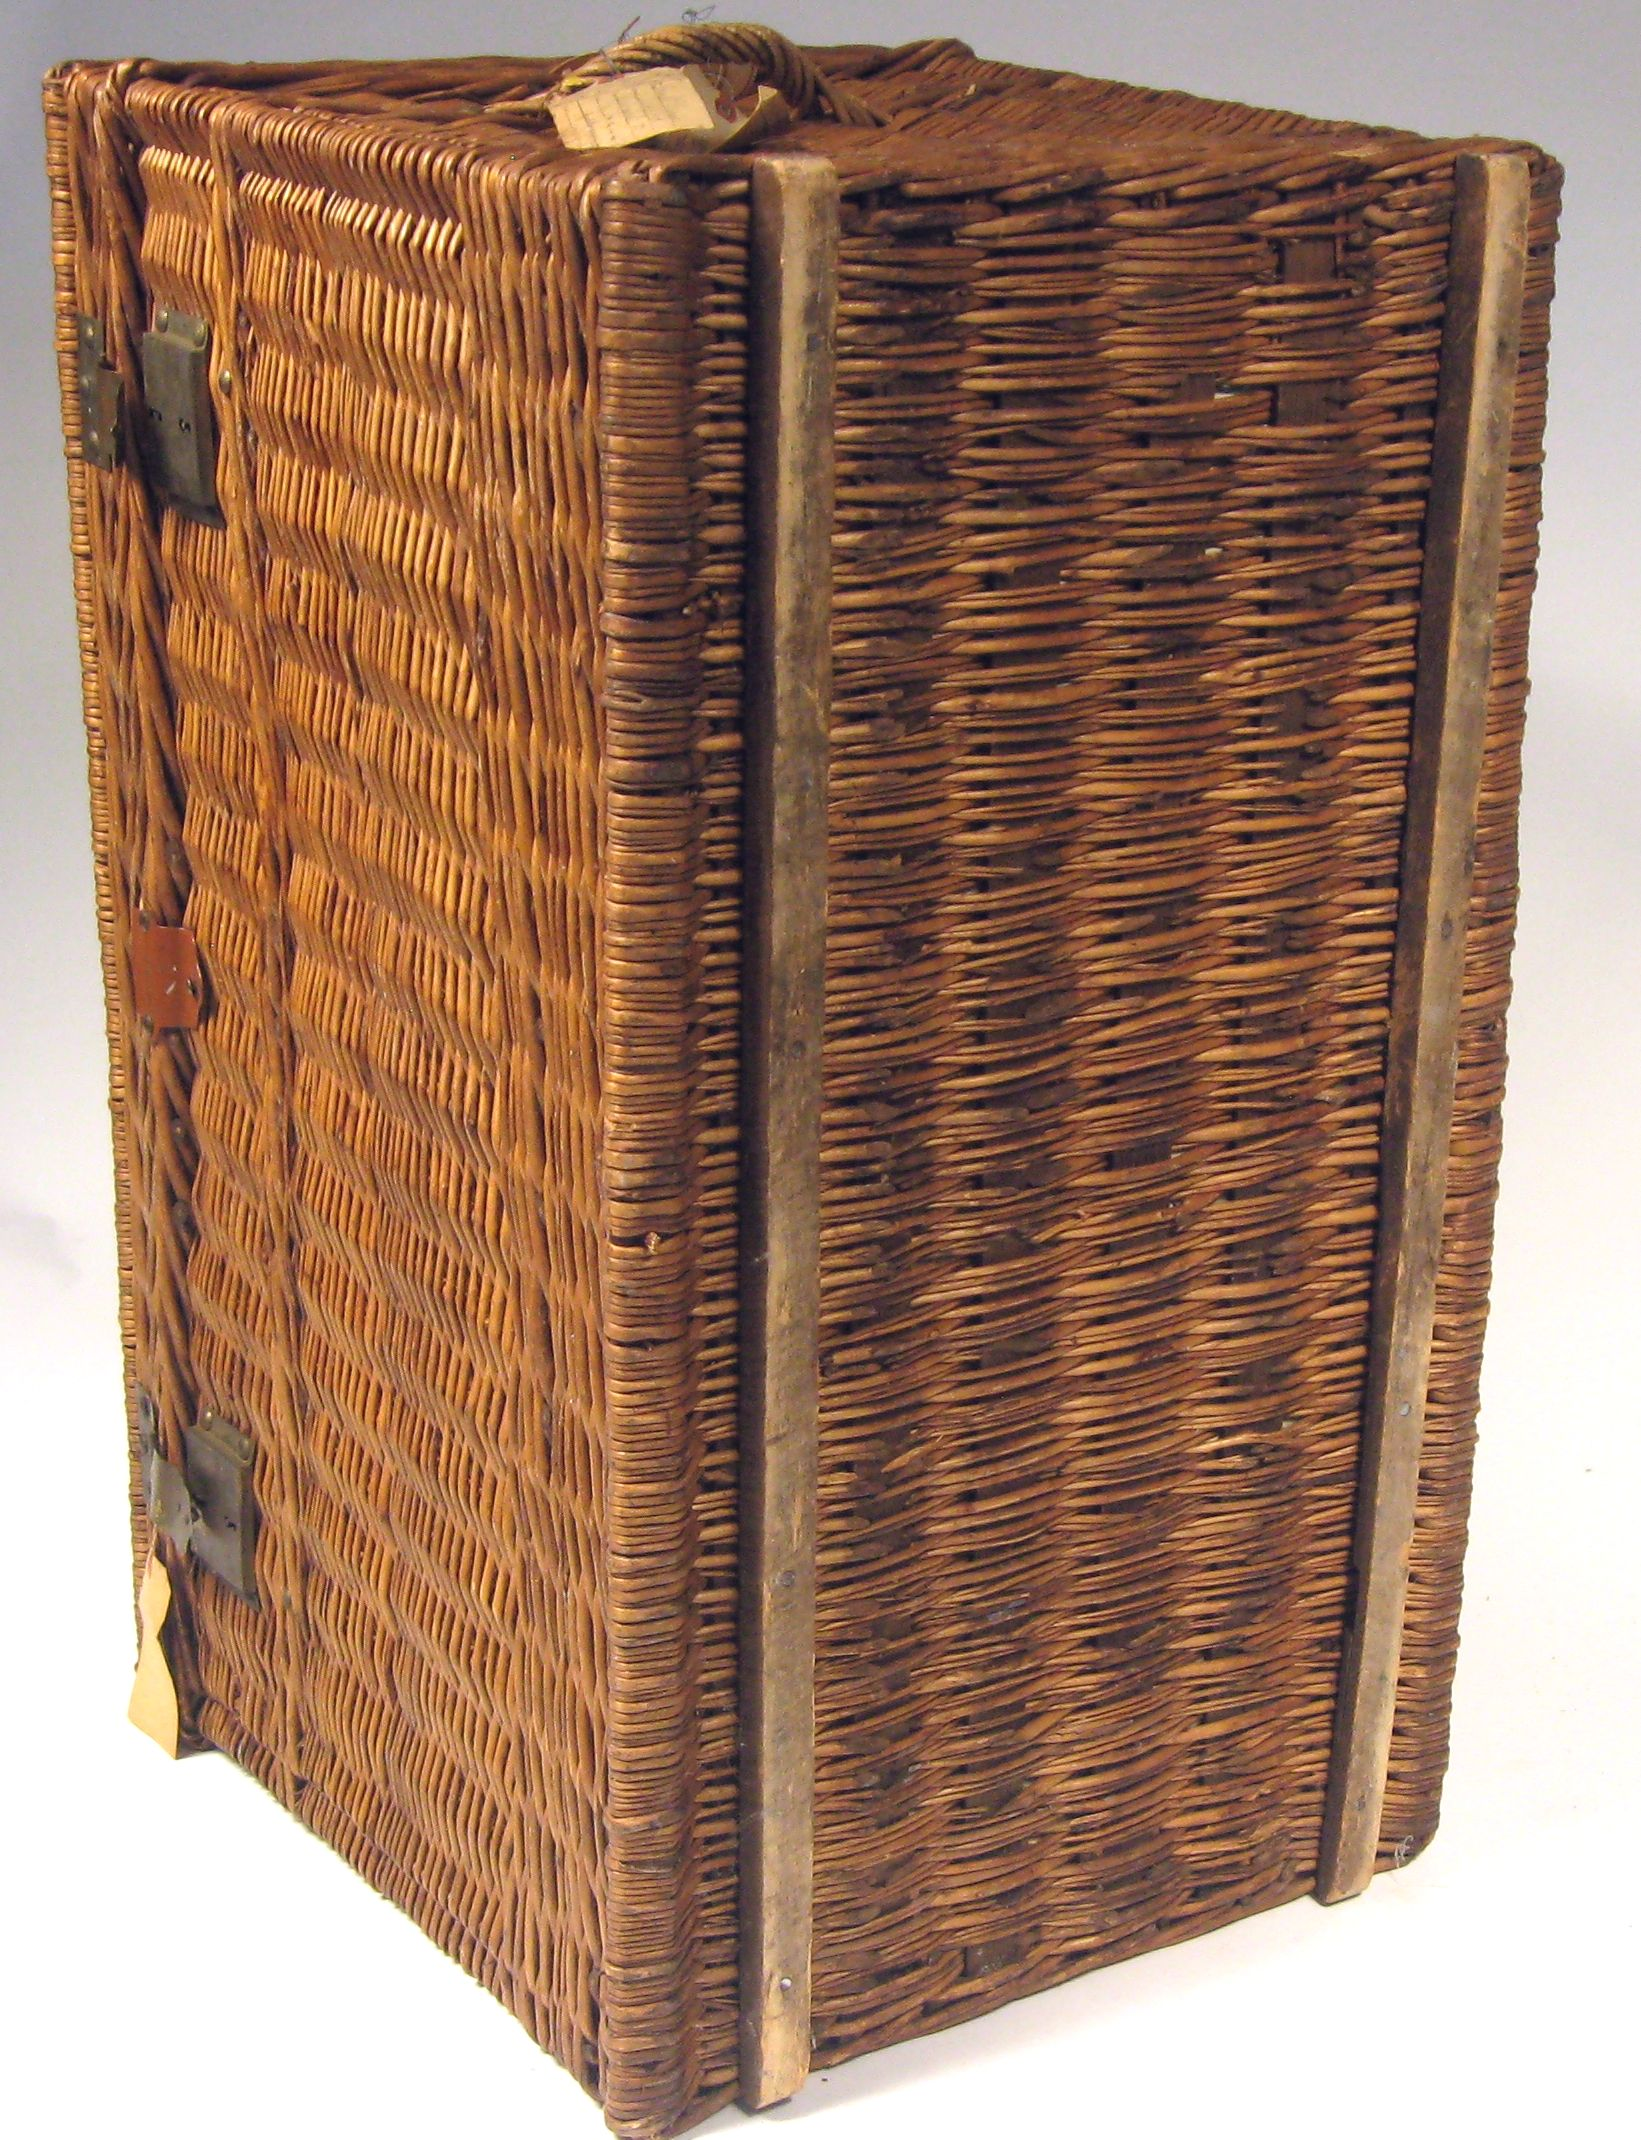 Brand-new Large Antique French Wicker Trunk | Chairish HO78